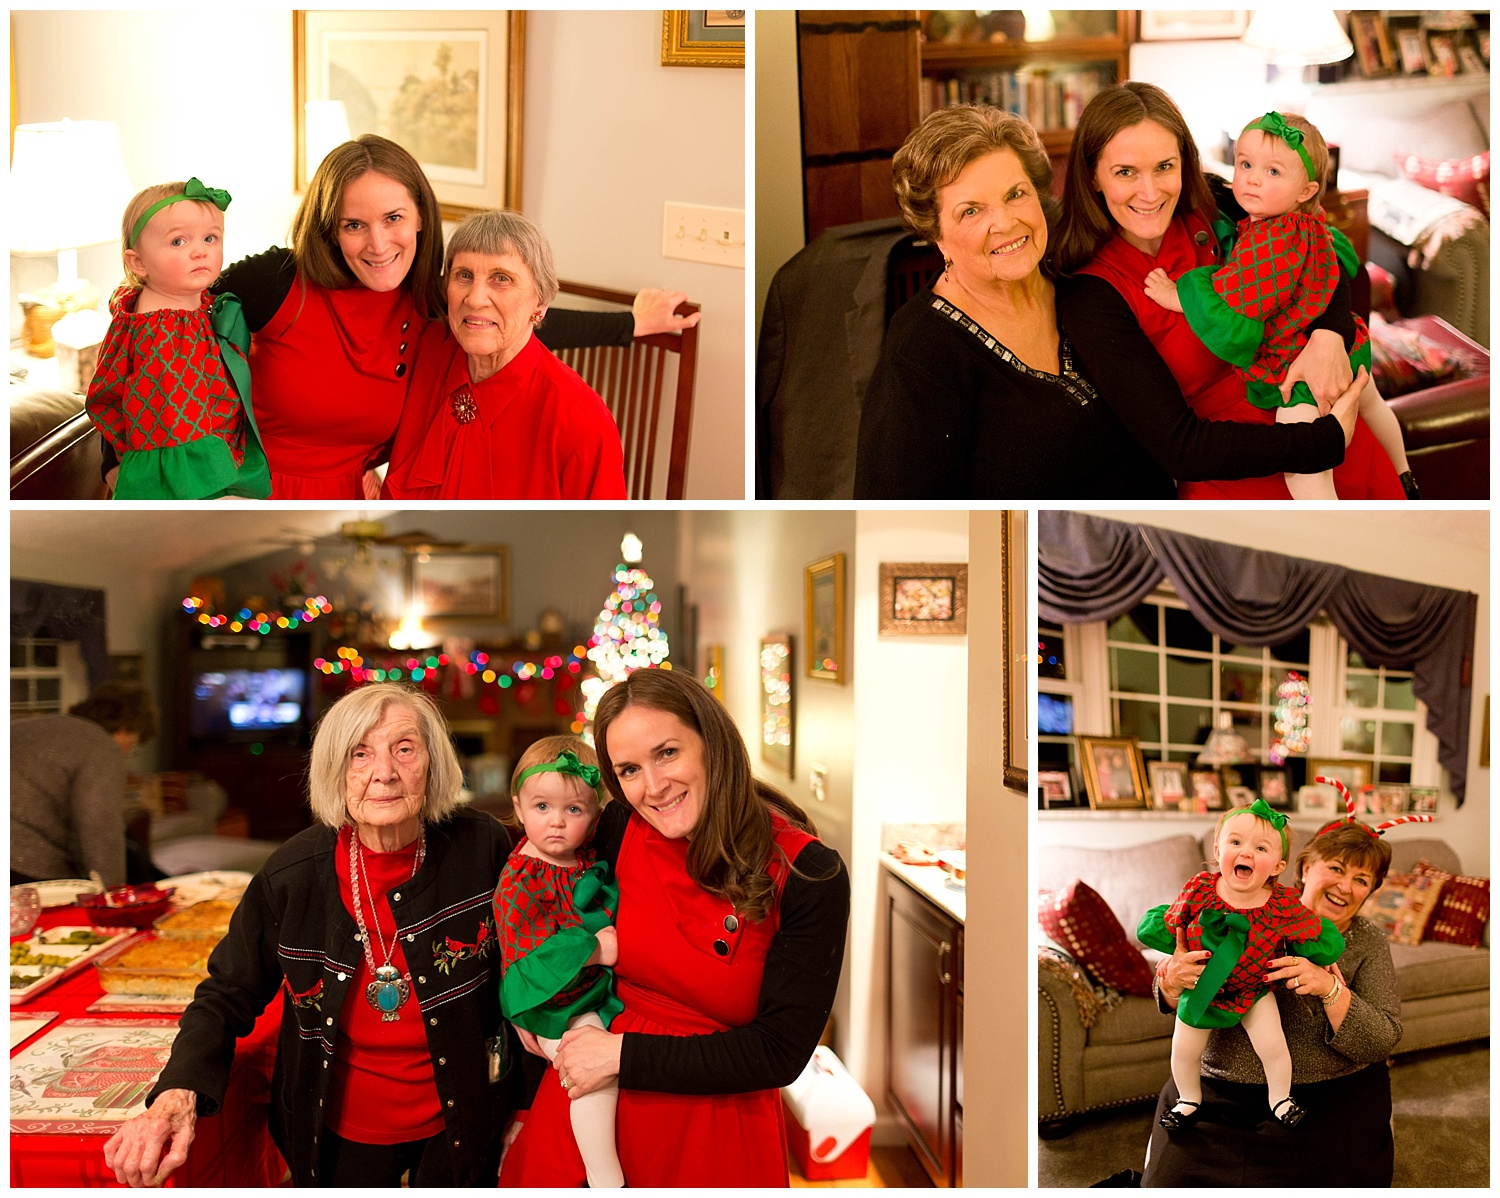 four generations of women at Christmas